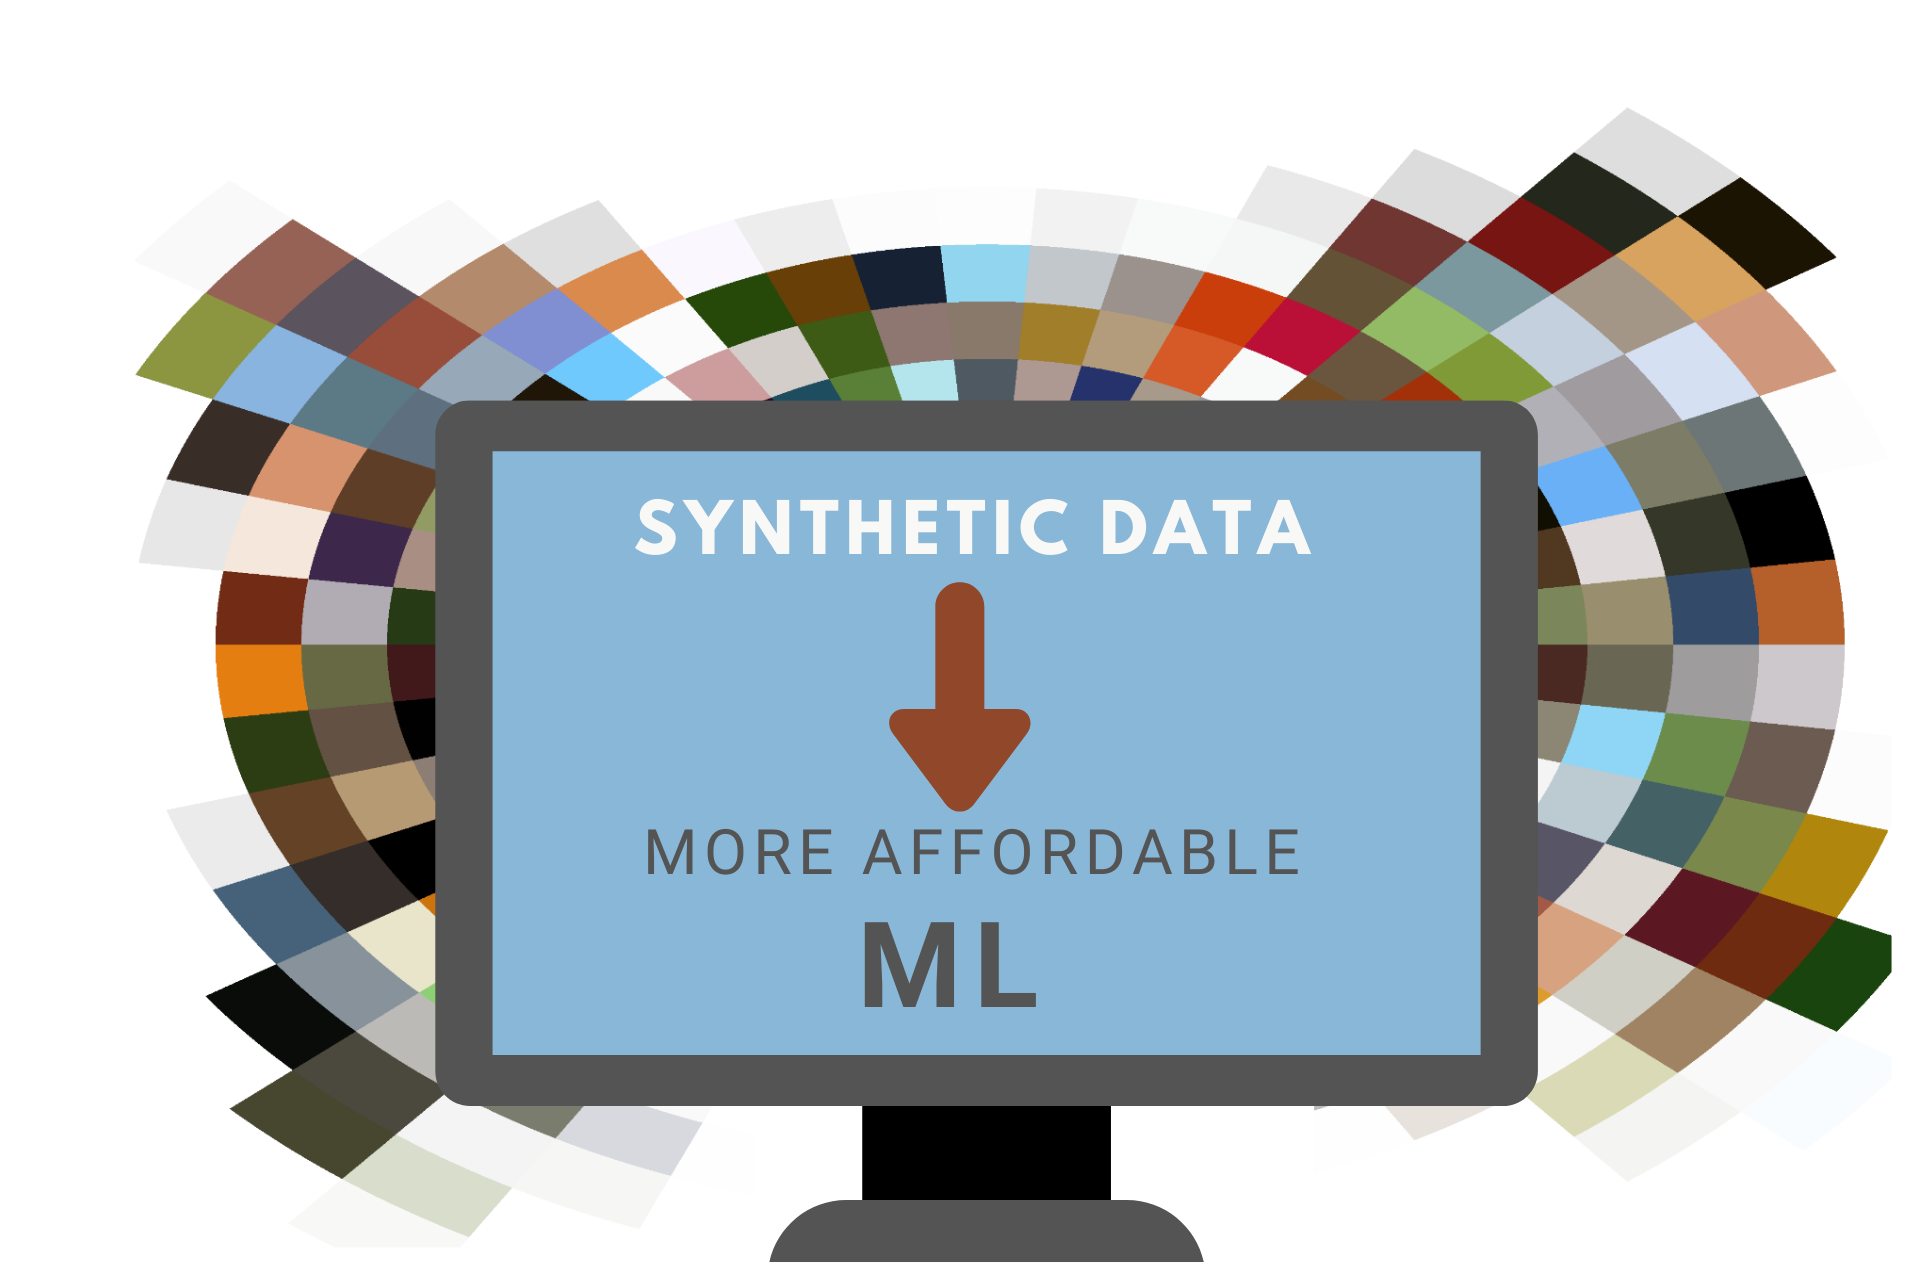 SYNTHETIC DATASETS Affordable ML